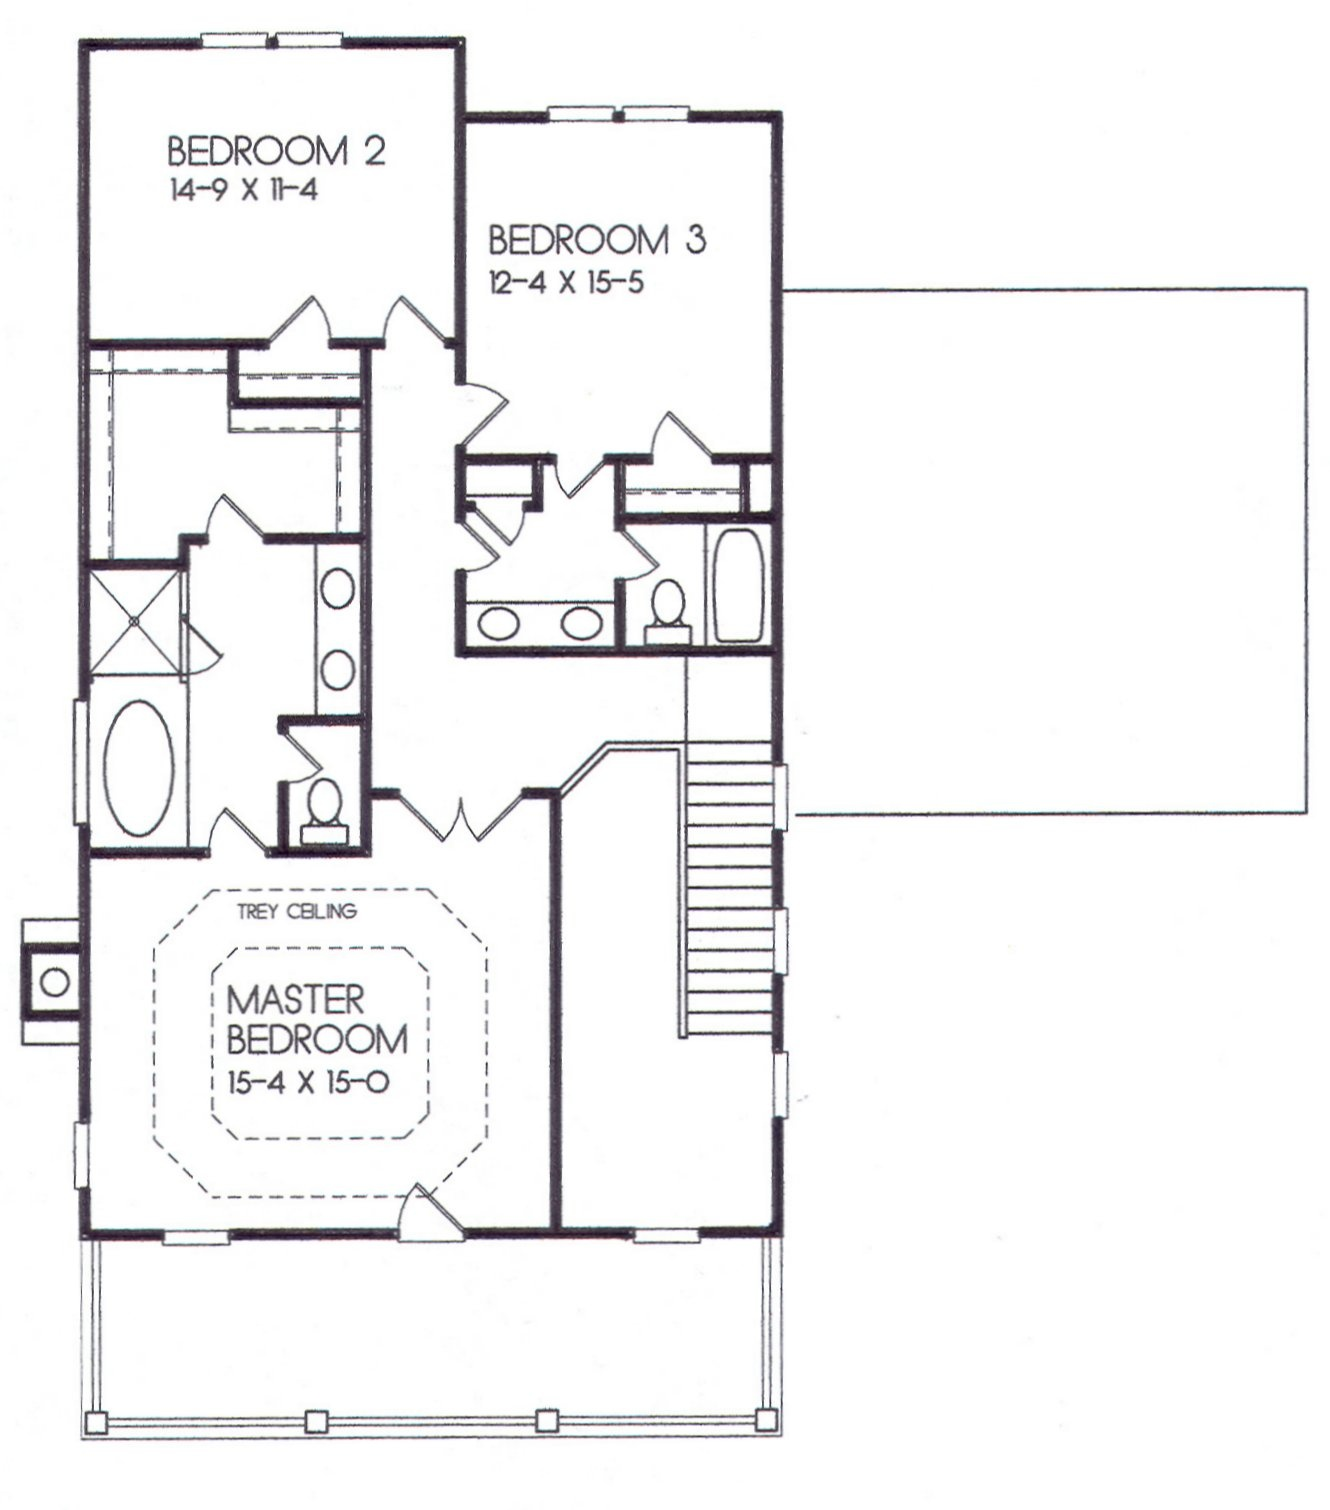 24-42 second floor plan